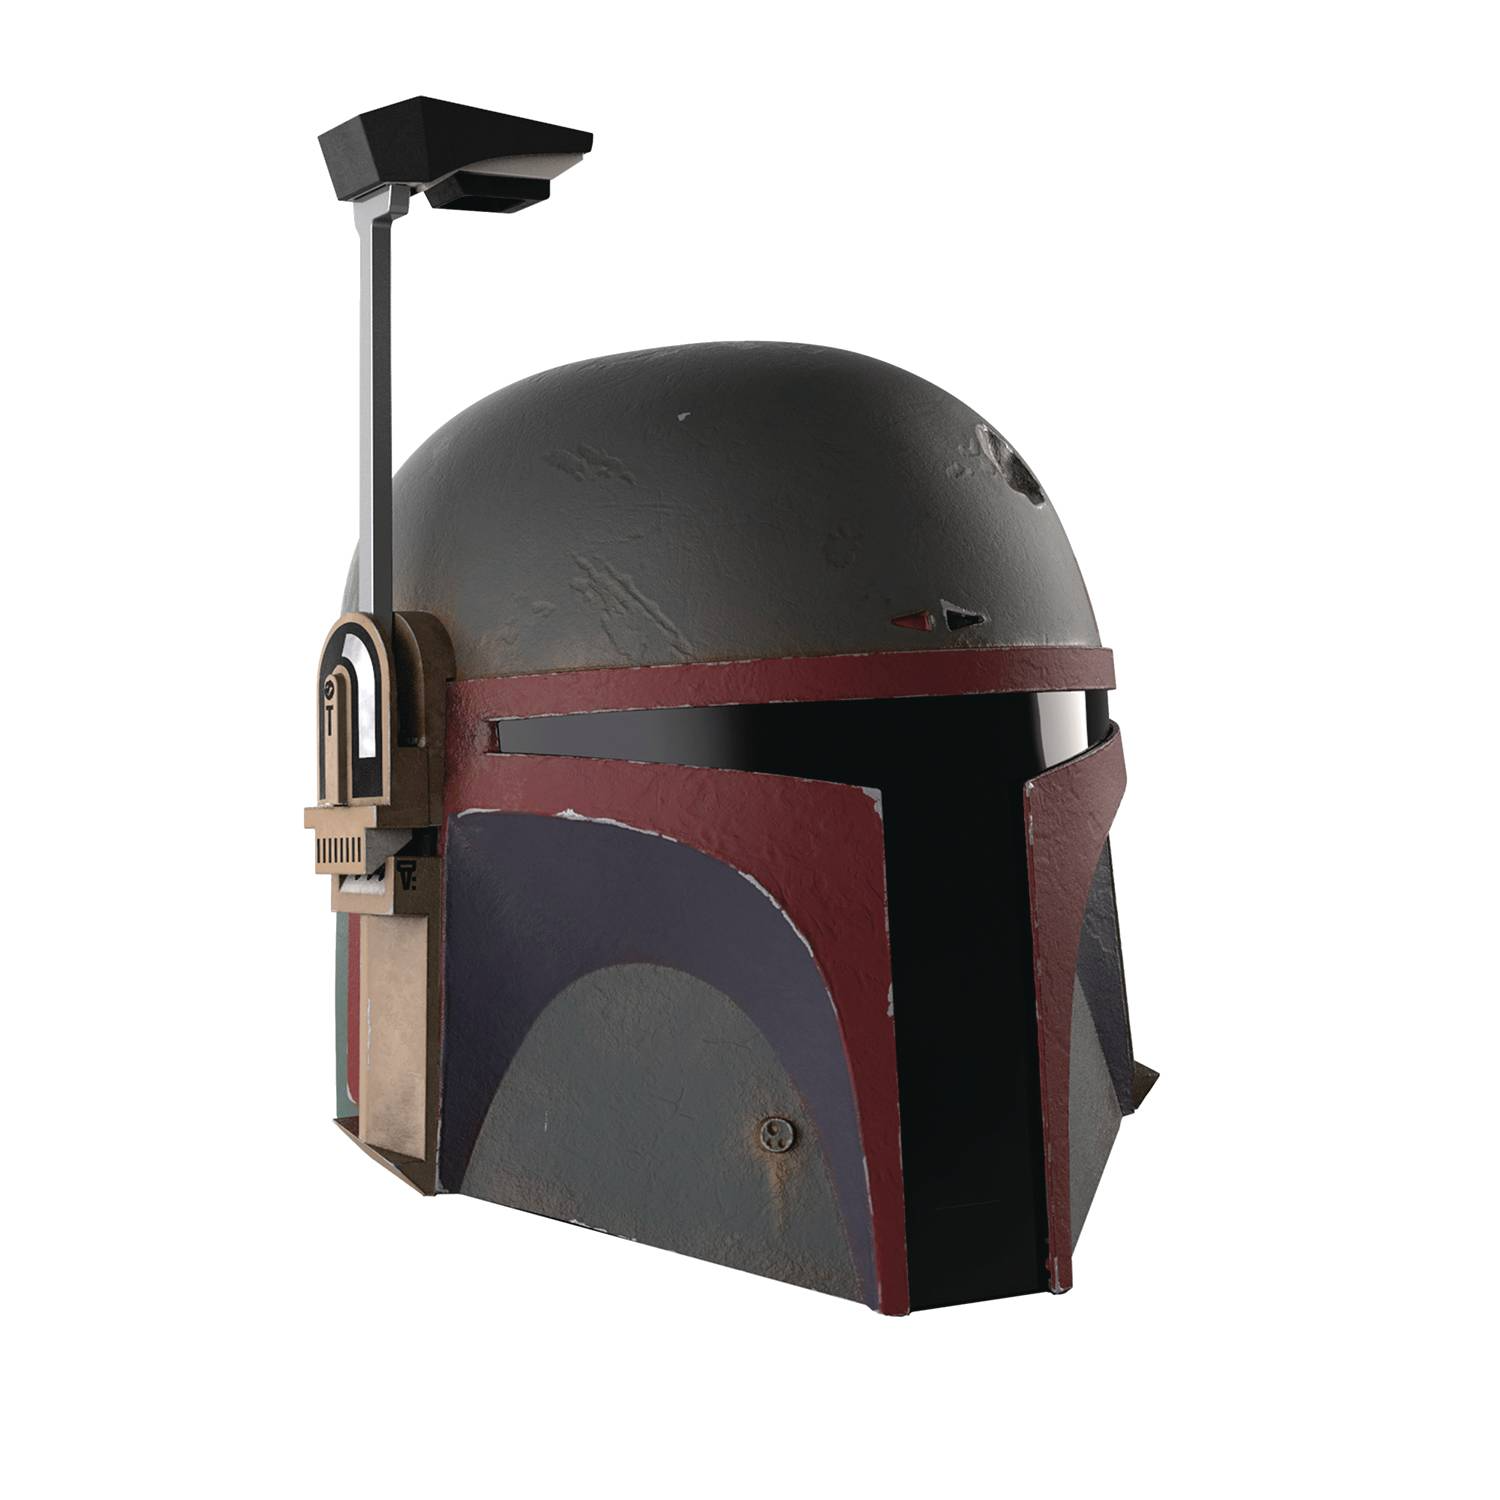 Star Wars The Black Series - The Mandalorian - Boba Fett Electronic Helmet